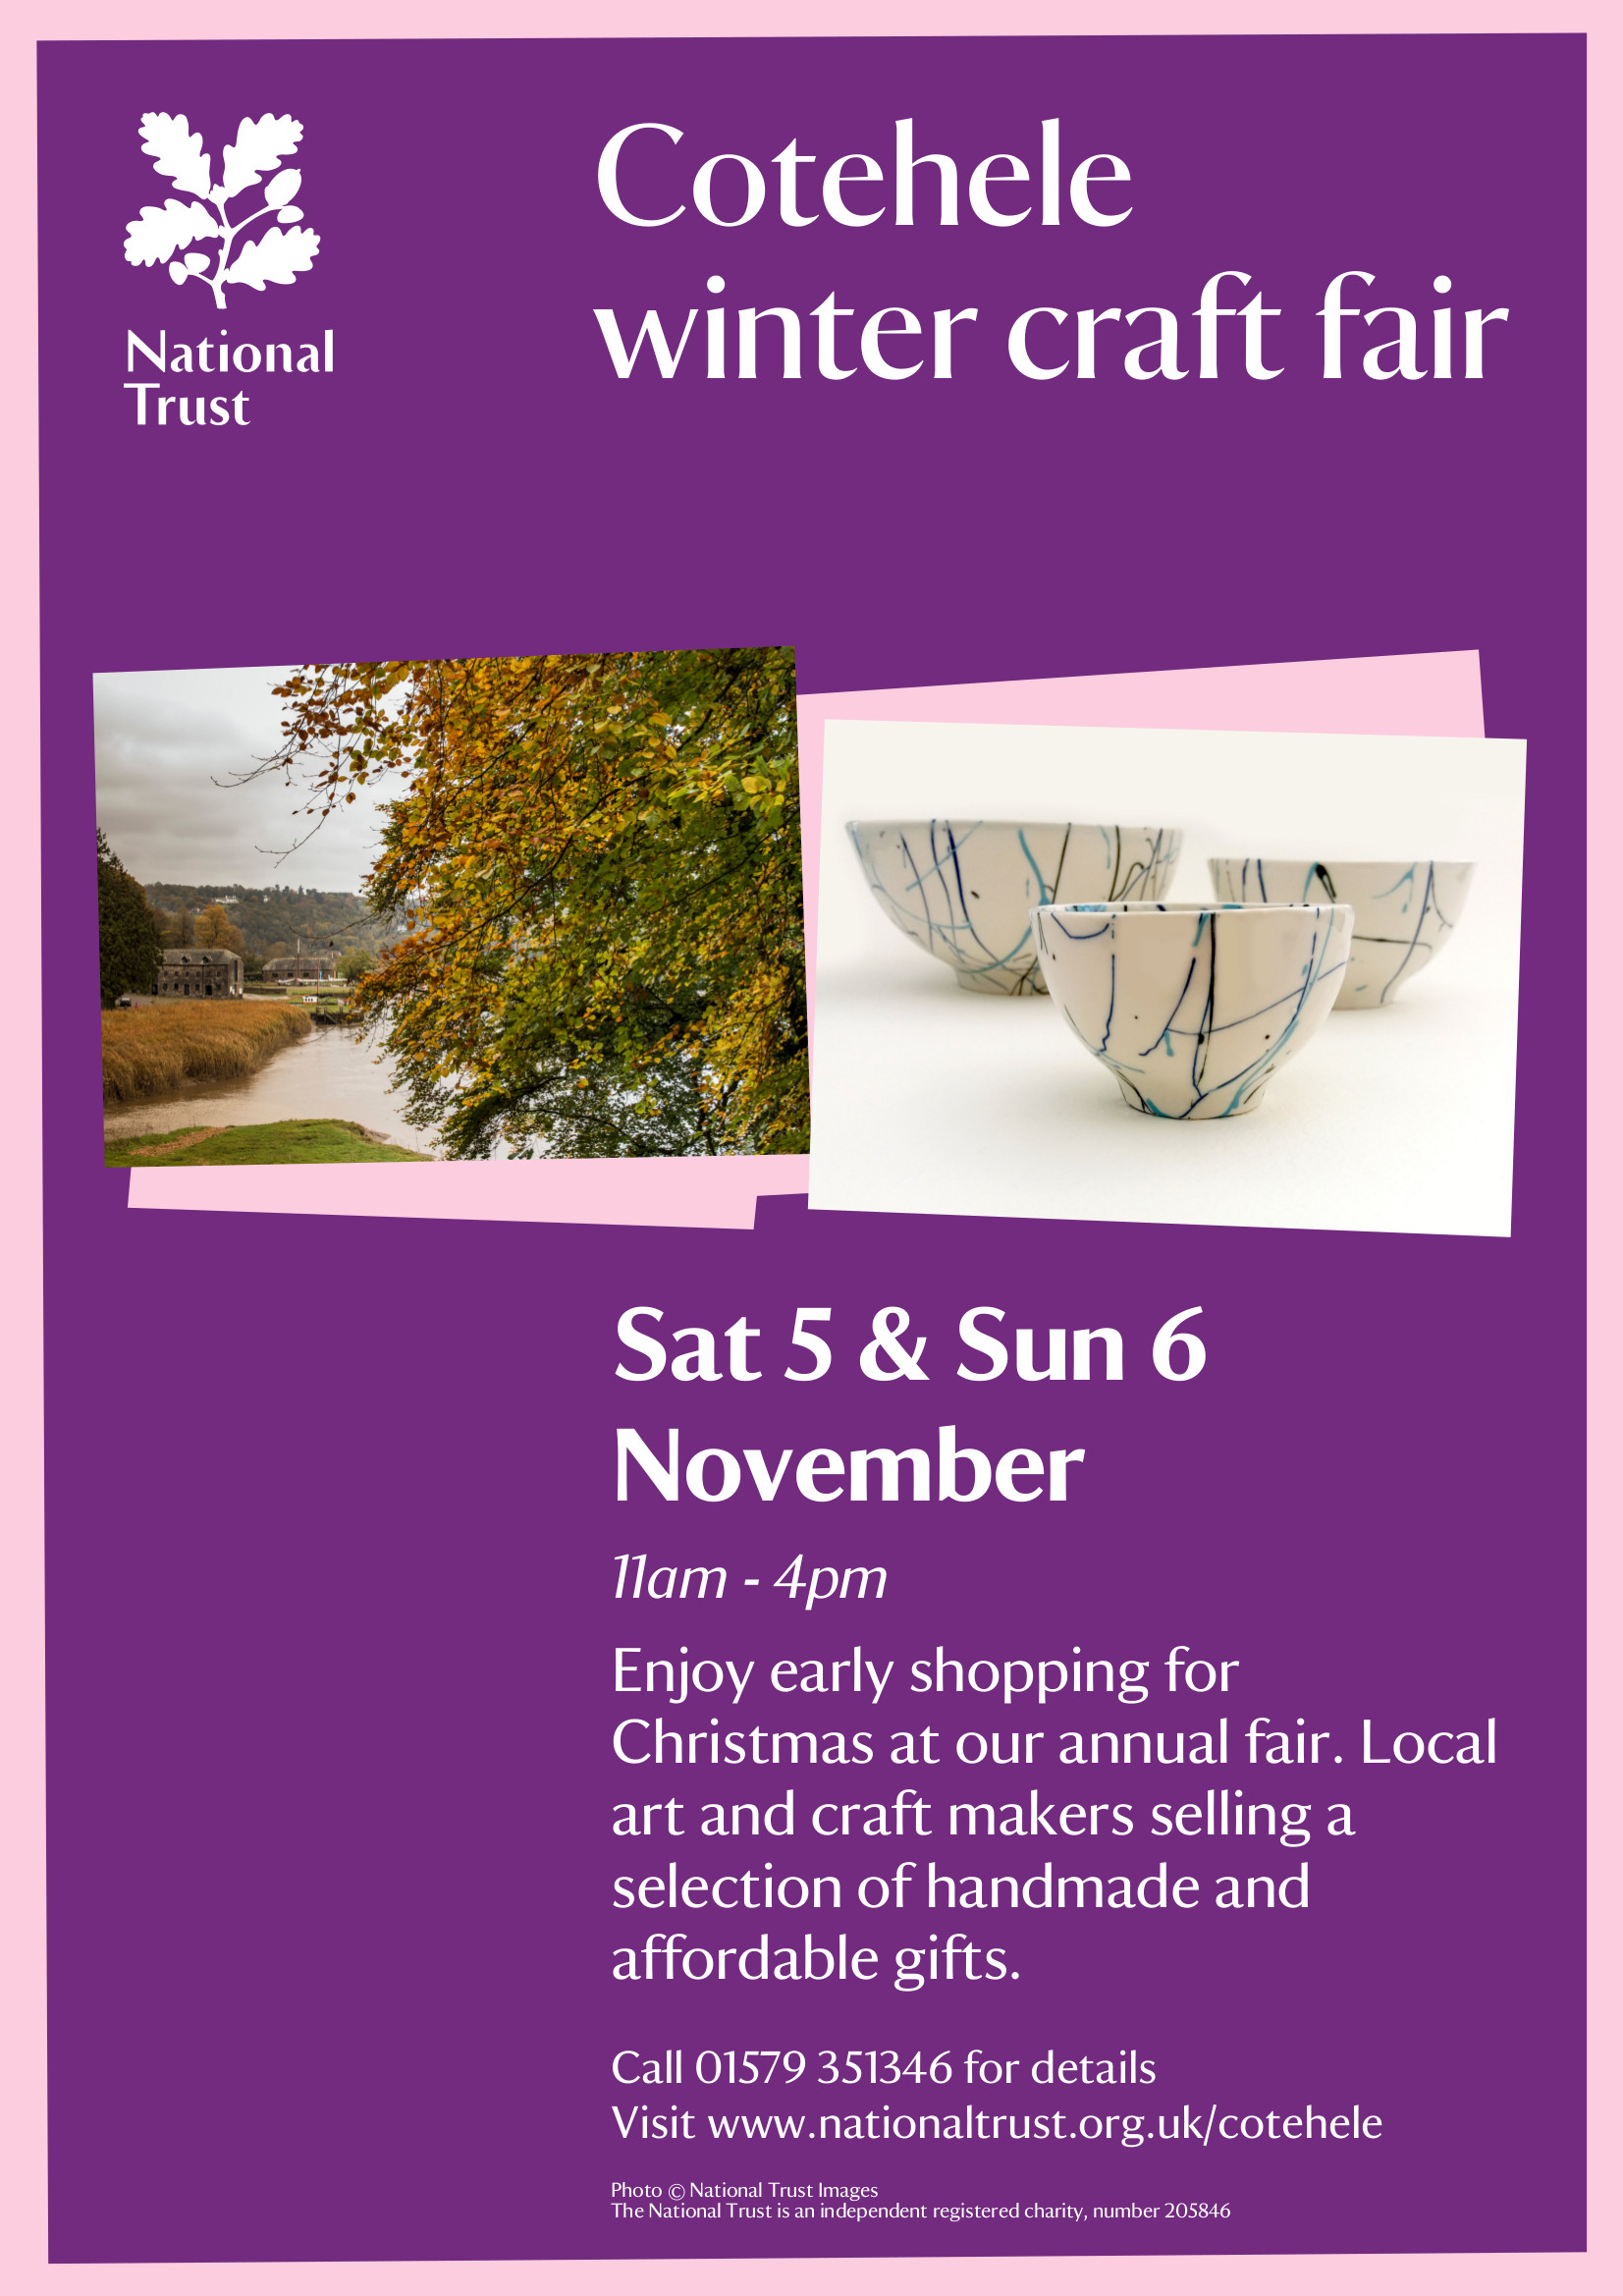 October 10 – Cotehele Craft Fair Poster